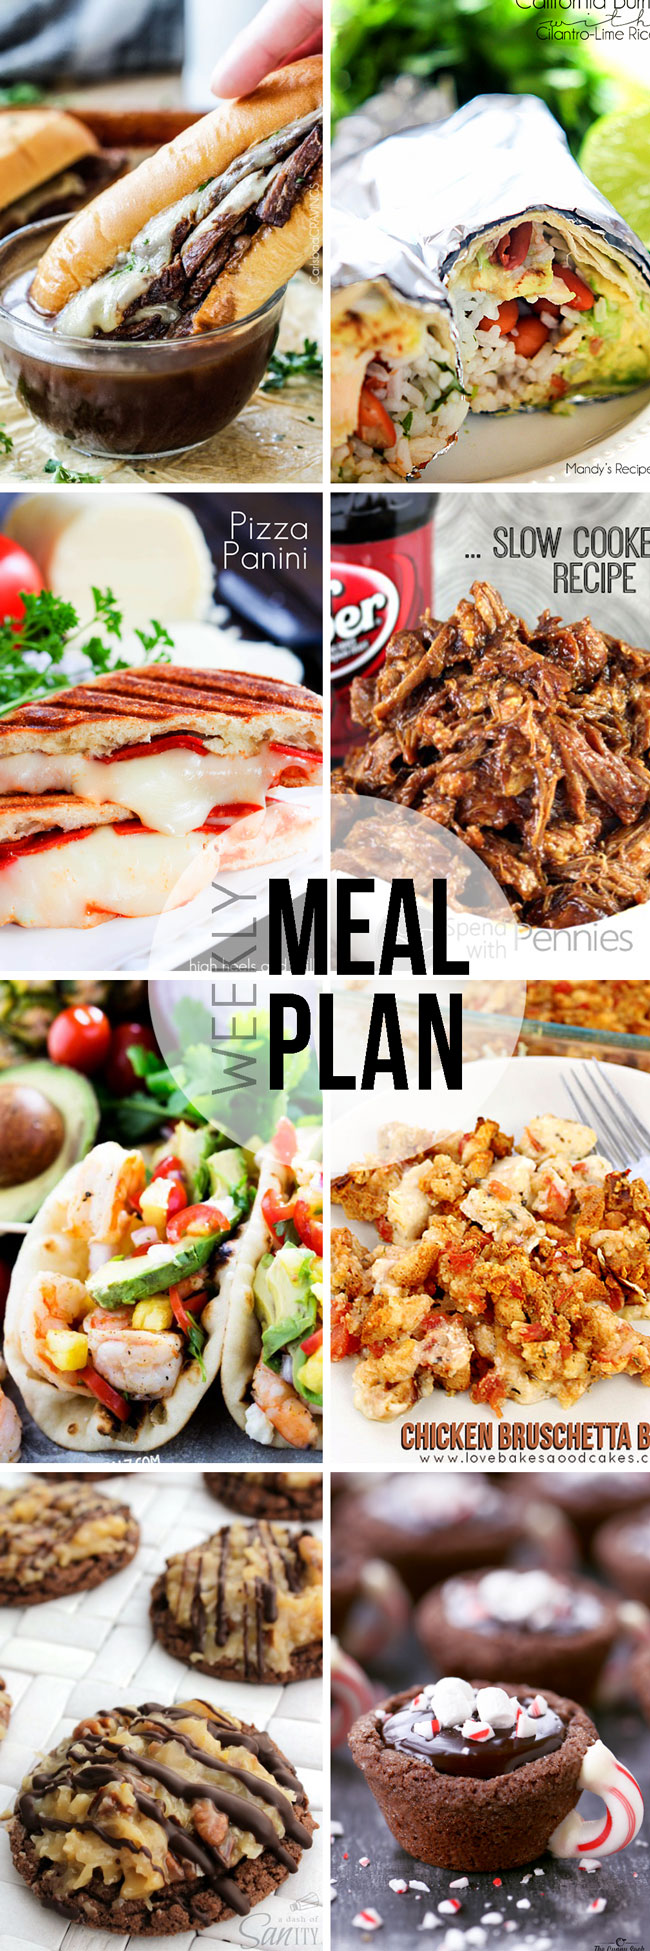 A week's worth of delicious recipes to make meal planning easier.